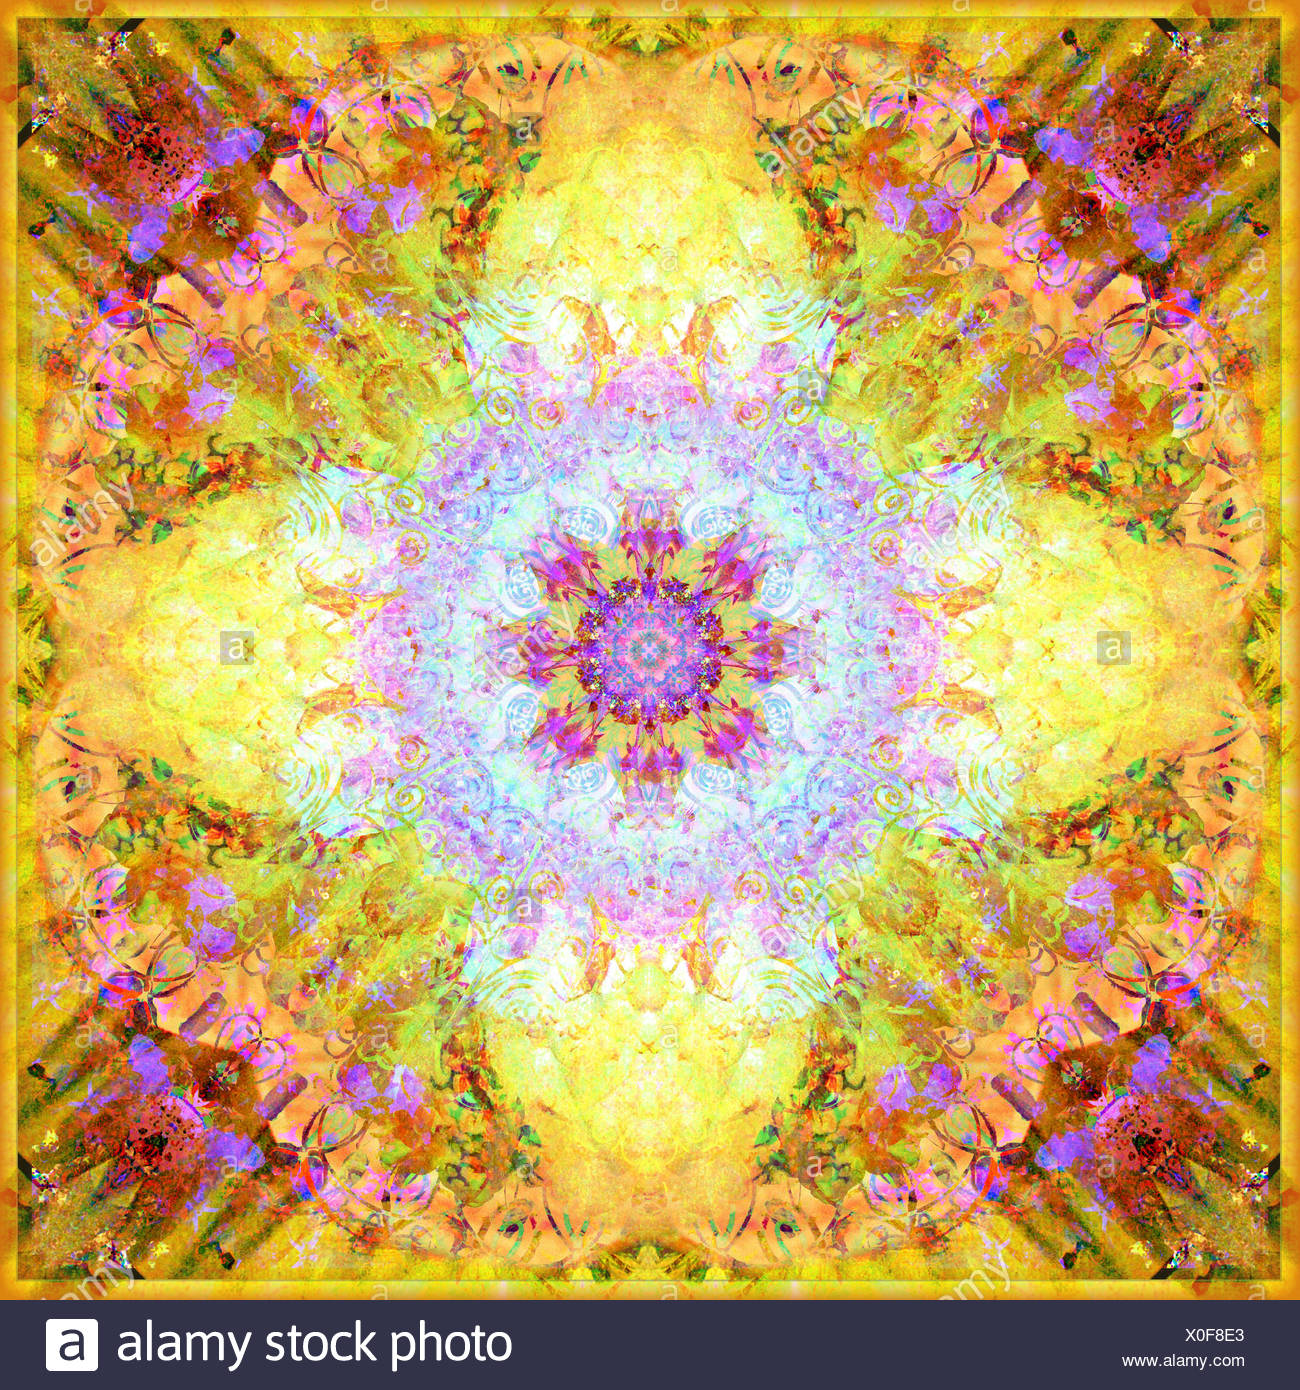 A Flower Mandala, photographic layer work from flowers Stock Photo